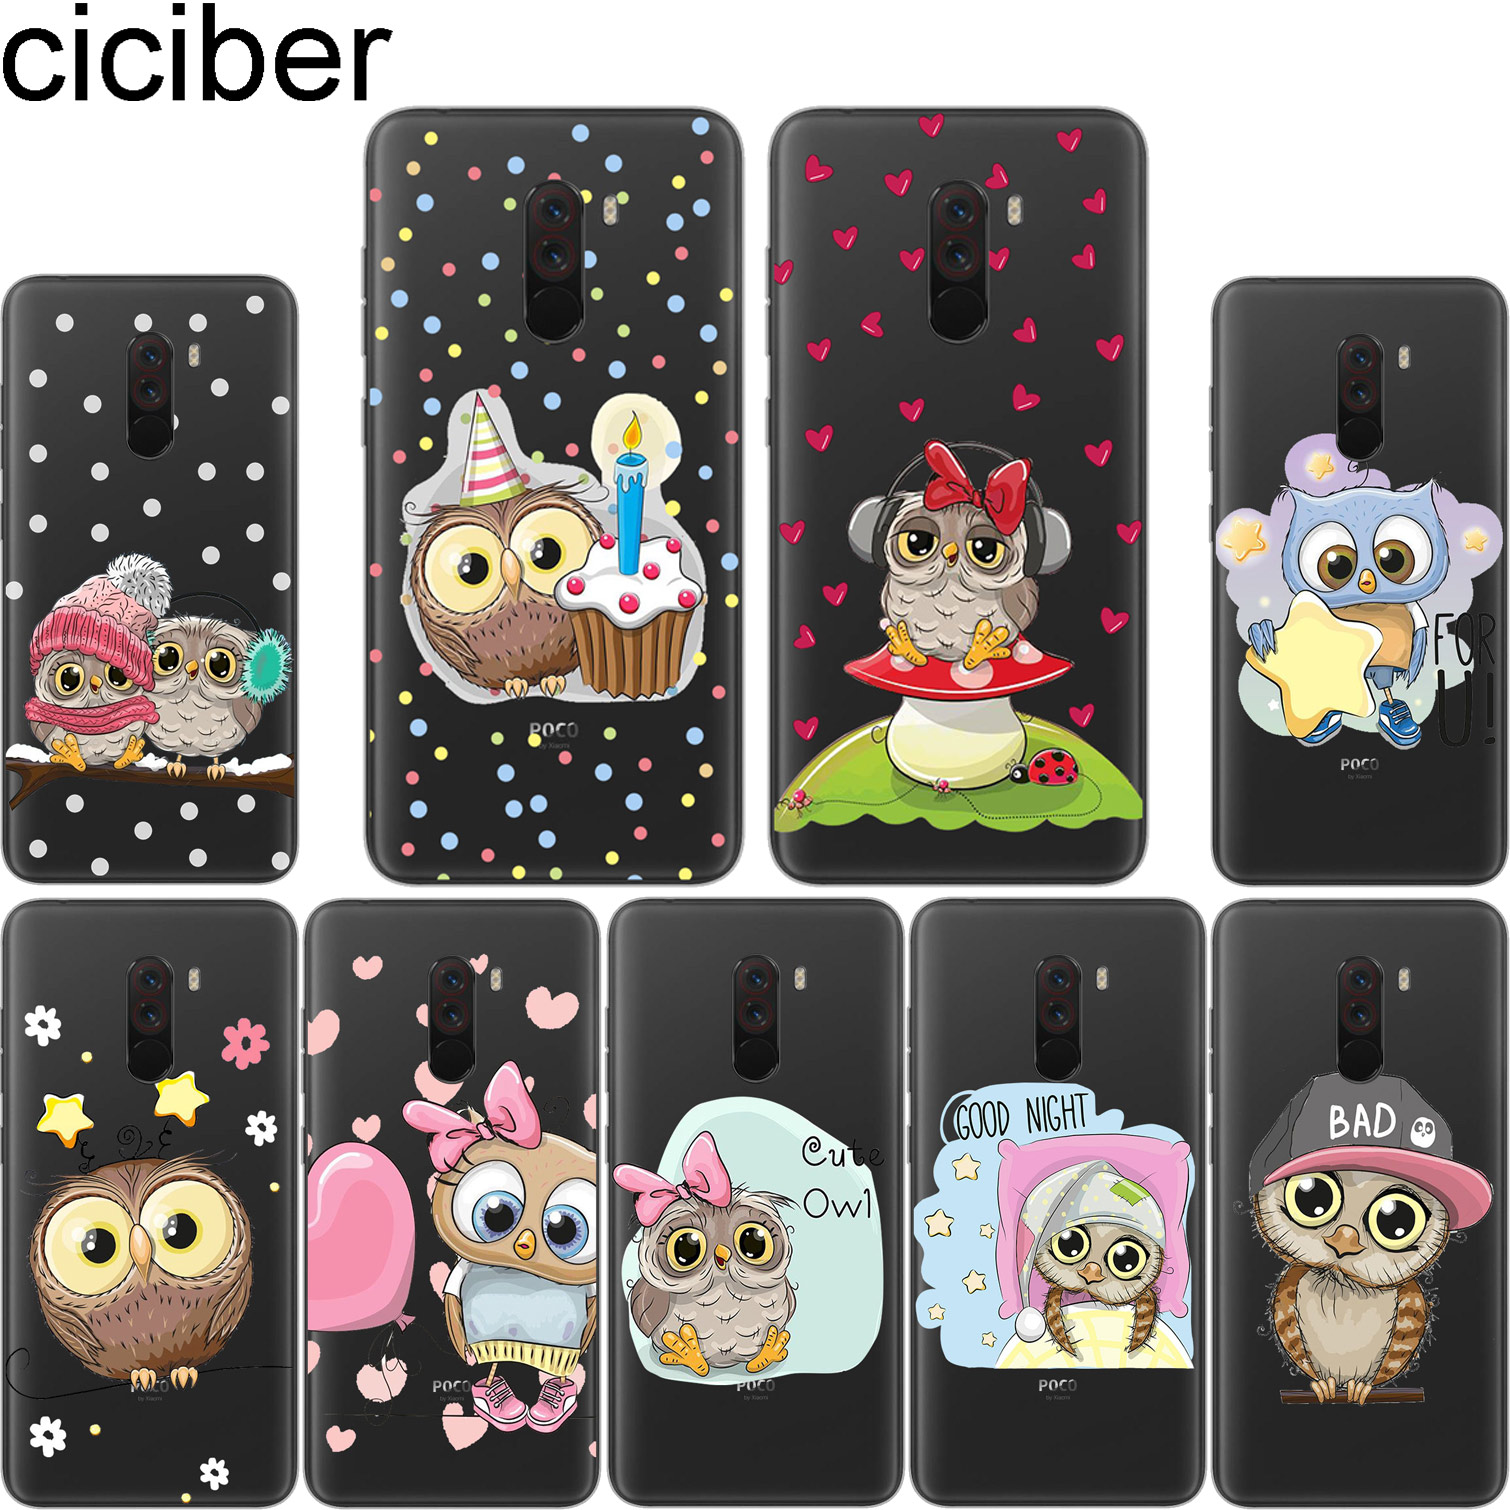 ciciber Owl Heart For Xiaomi A1 A2 8 6 5 X 5C 5S Plus Lite SE Poco Phone F1 Clear Soft TPU for MIX MAX 3 2 1 S Pro Phone Cases